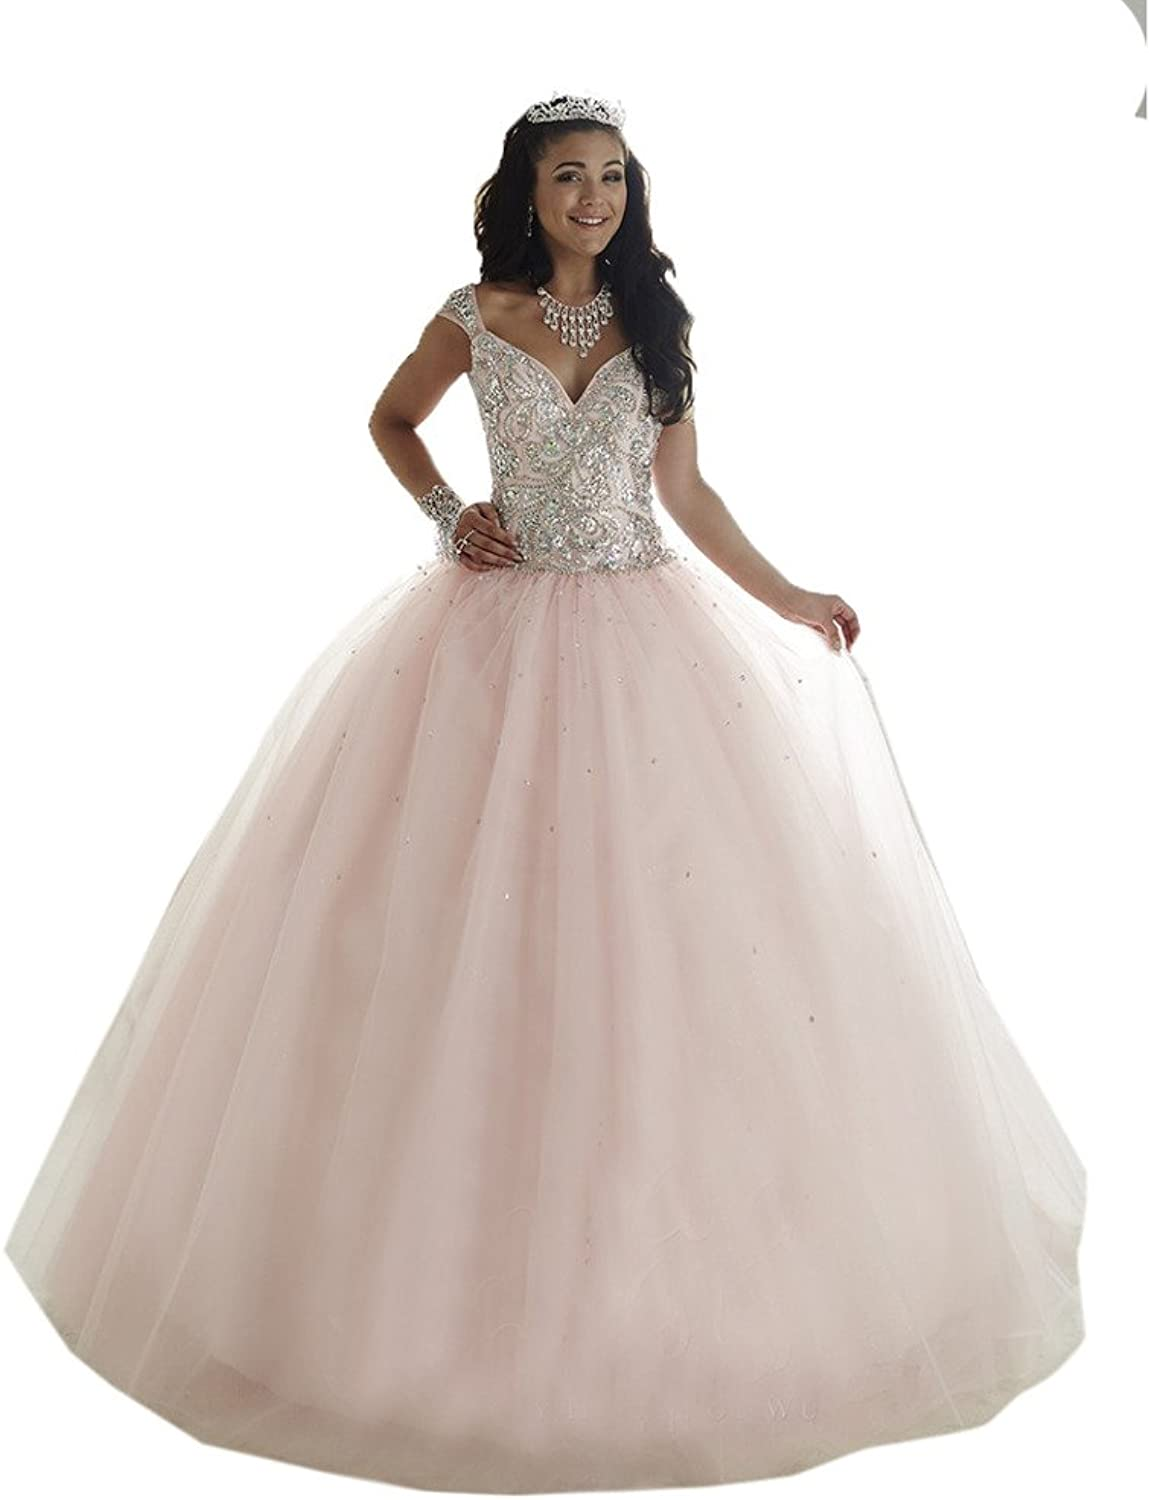 HSDJ Women's Beaded Tulle Ball Gowns Prom Sweet 16 Long Quinceanera Dresses